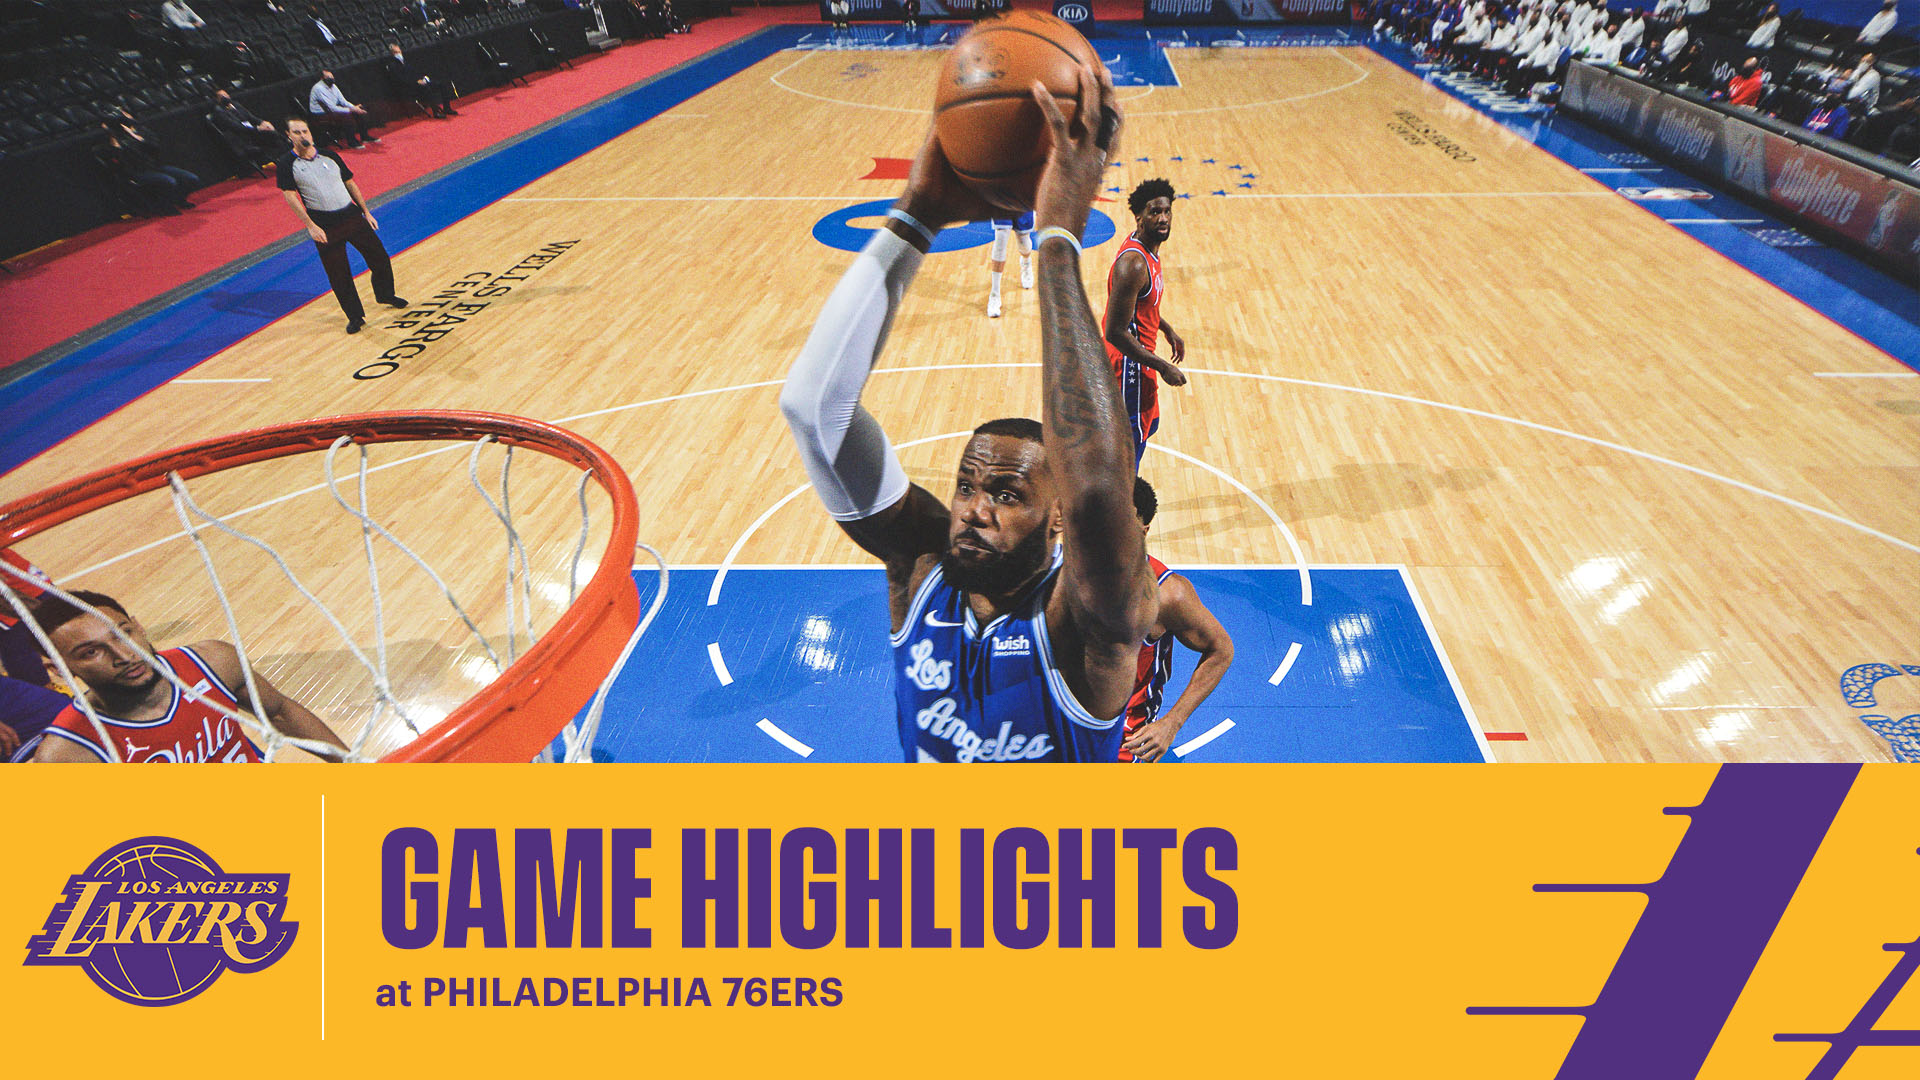 HIGHLIGHTS | LeBron James (34 pts, 6 reb, 6 ast) vs Philadelphia 76ers